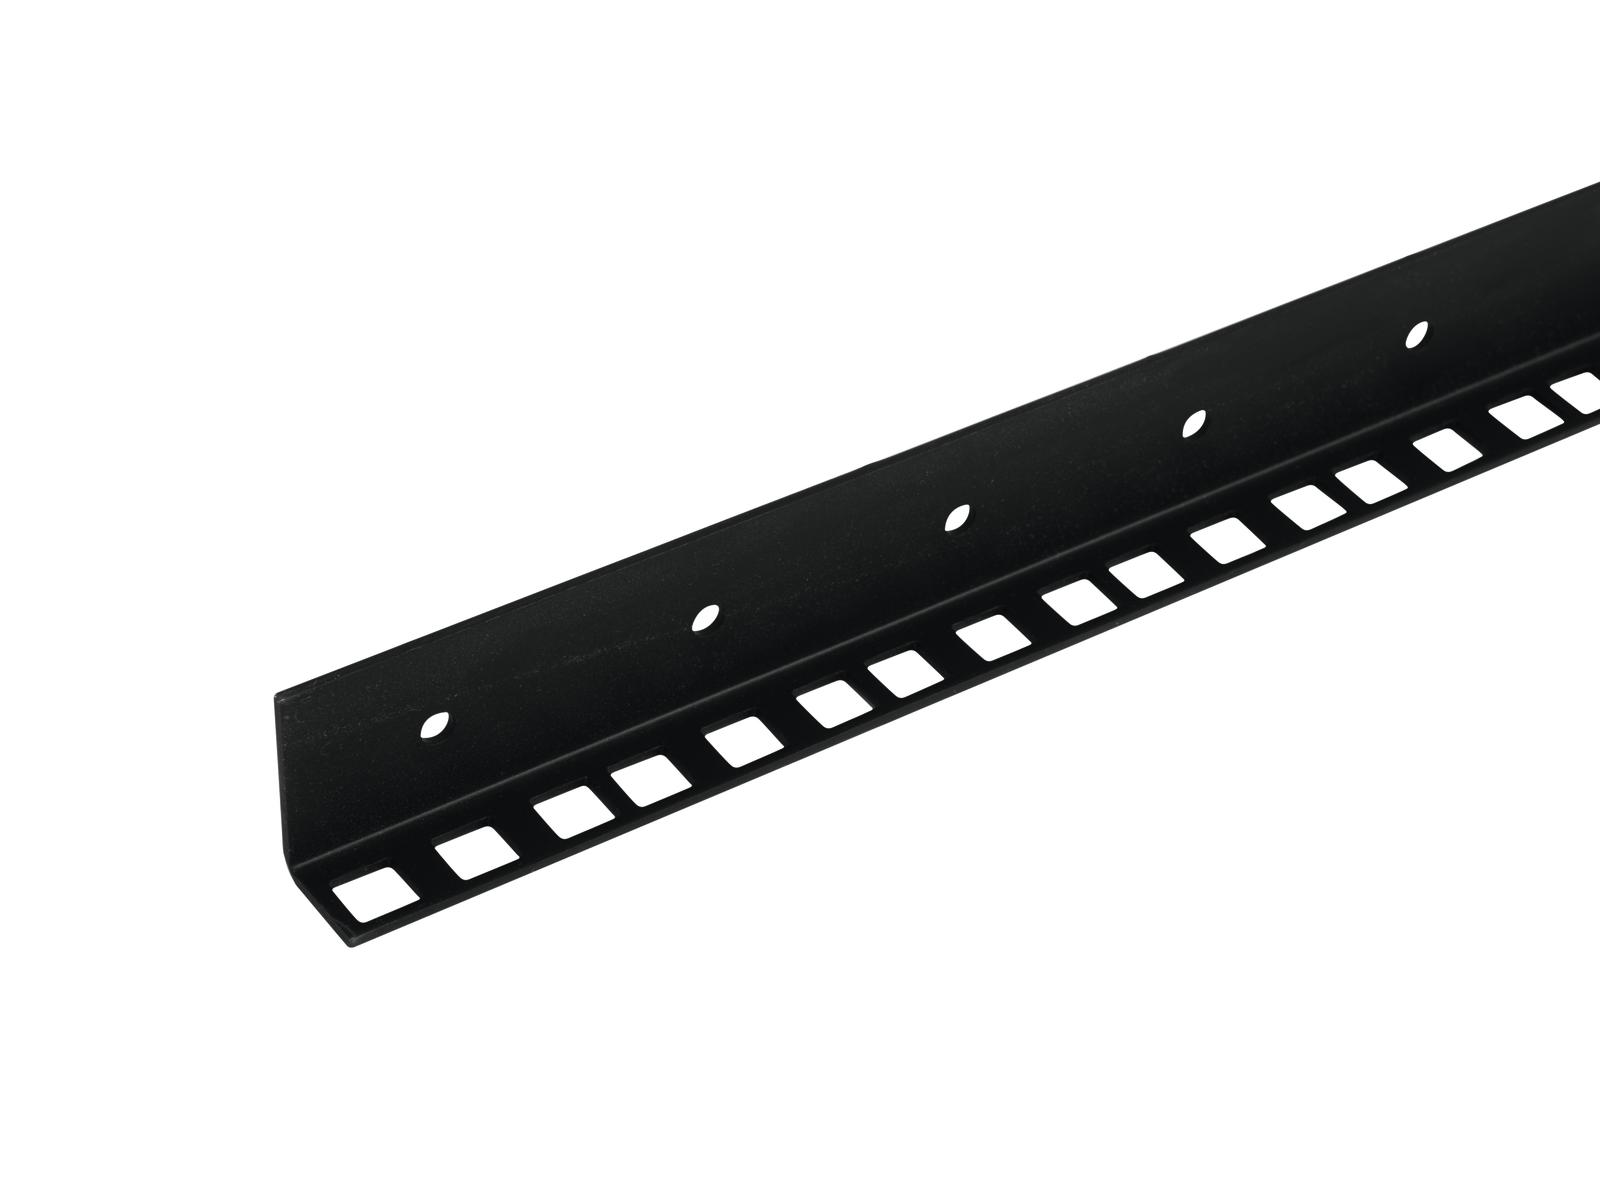 ACCESSORIO Rack rail AM-6 2 me